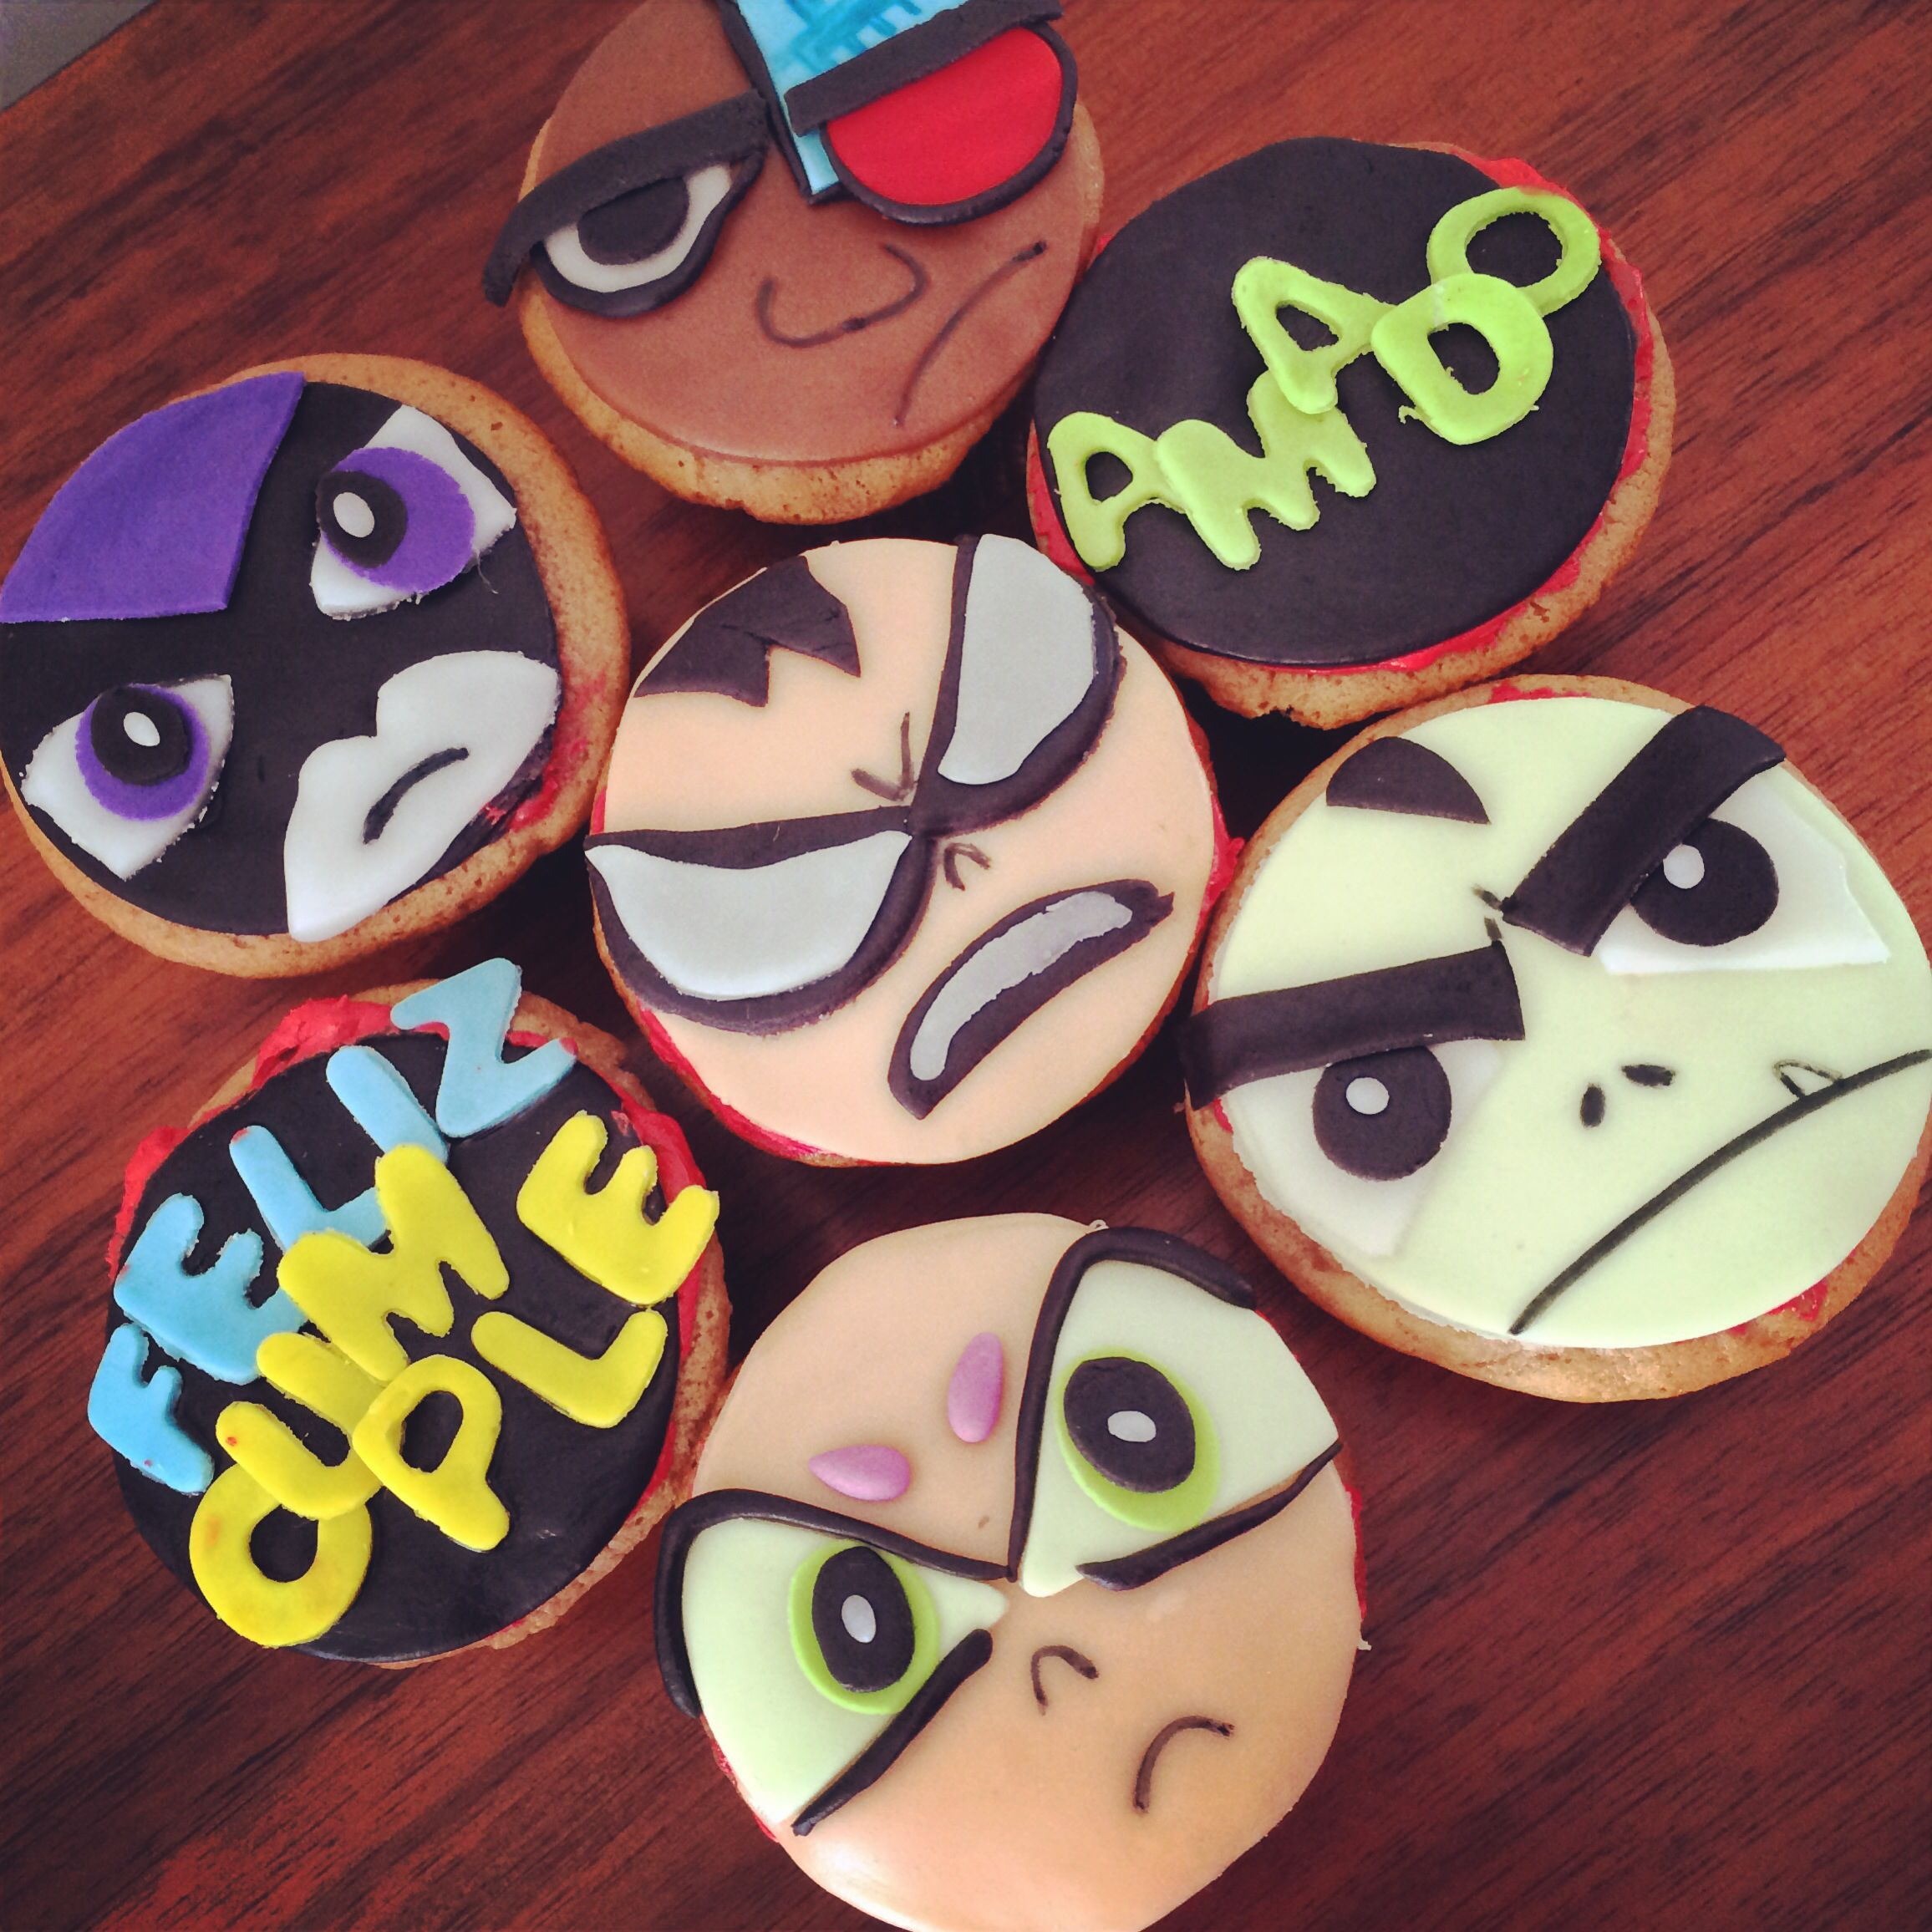 Teen Titans Cupcakes  Tiny Cakes Cakes And Cupcakes En -2215